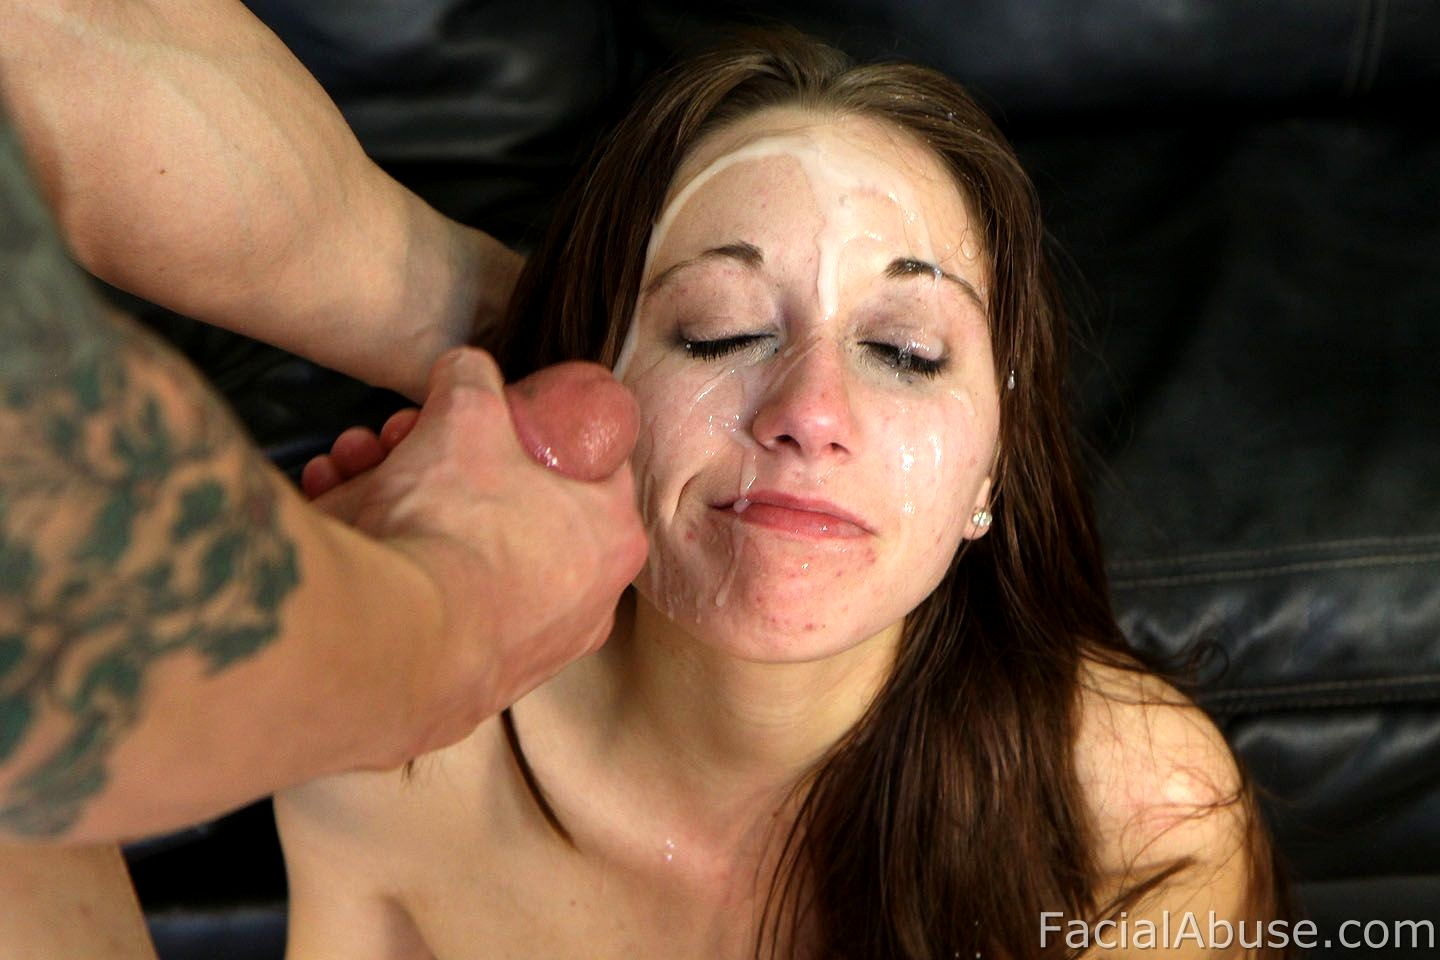 Abuse desiree facial #15